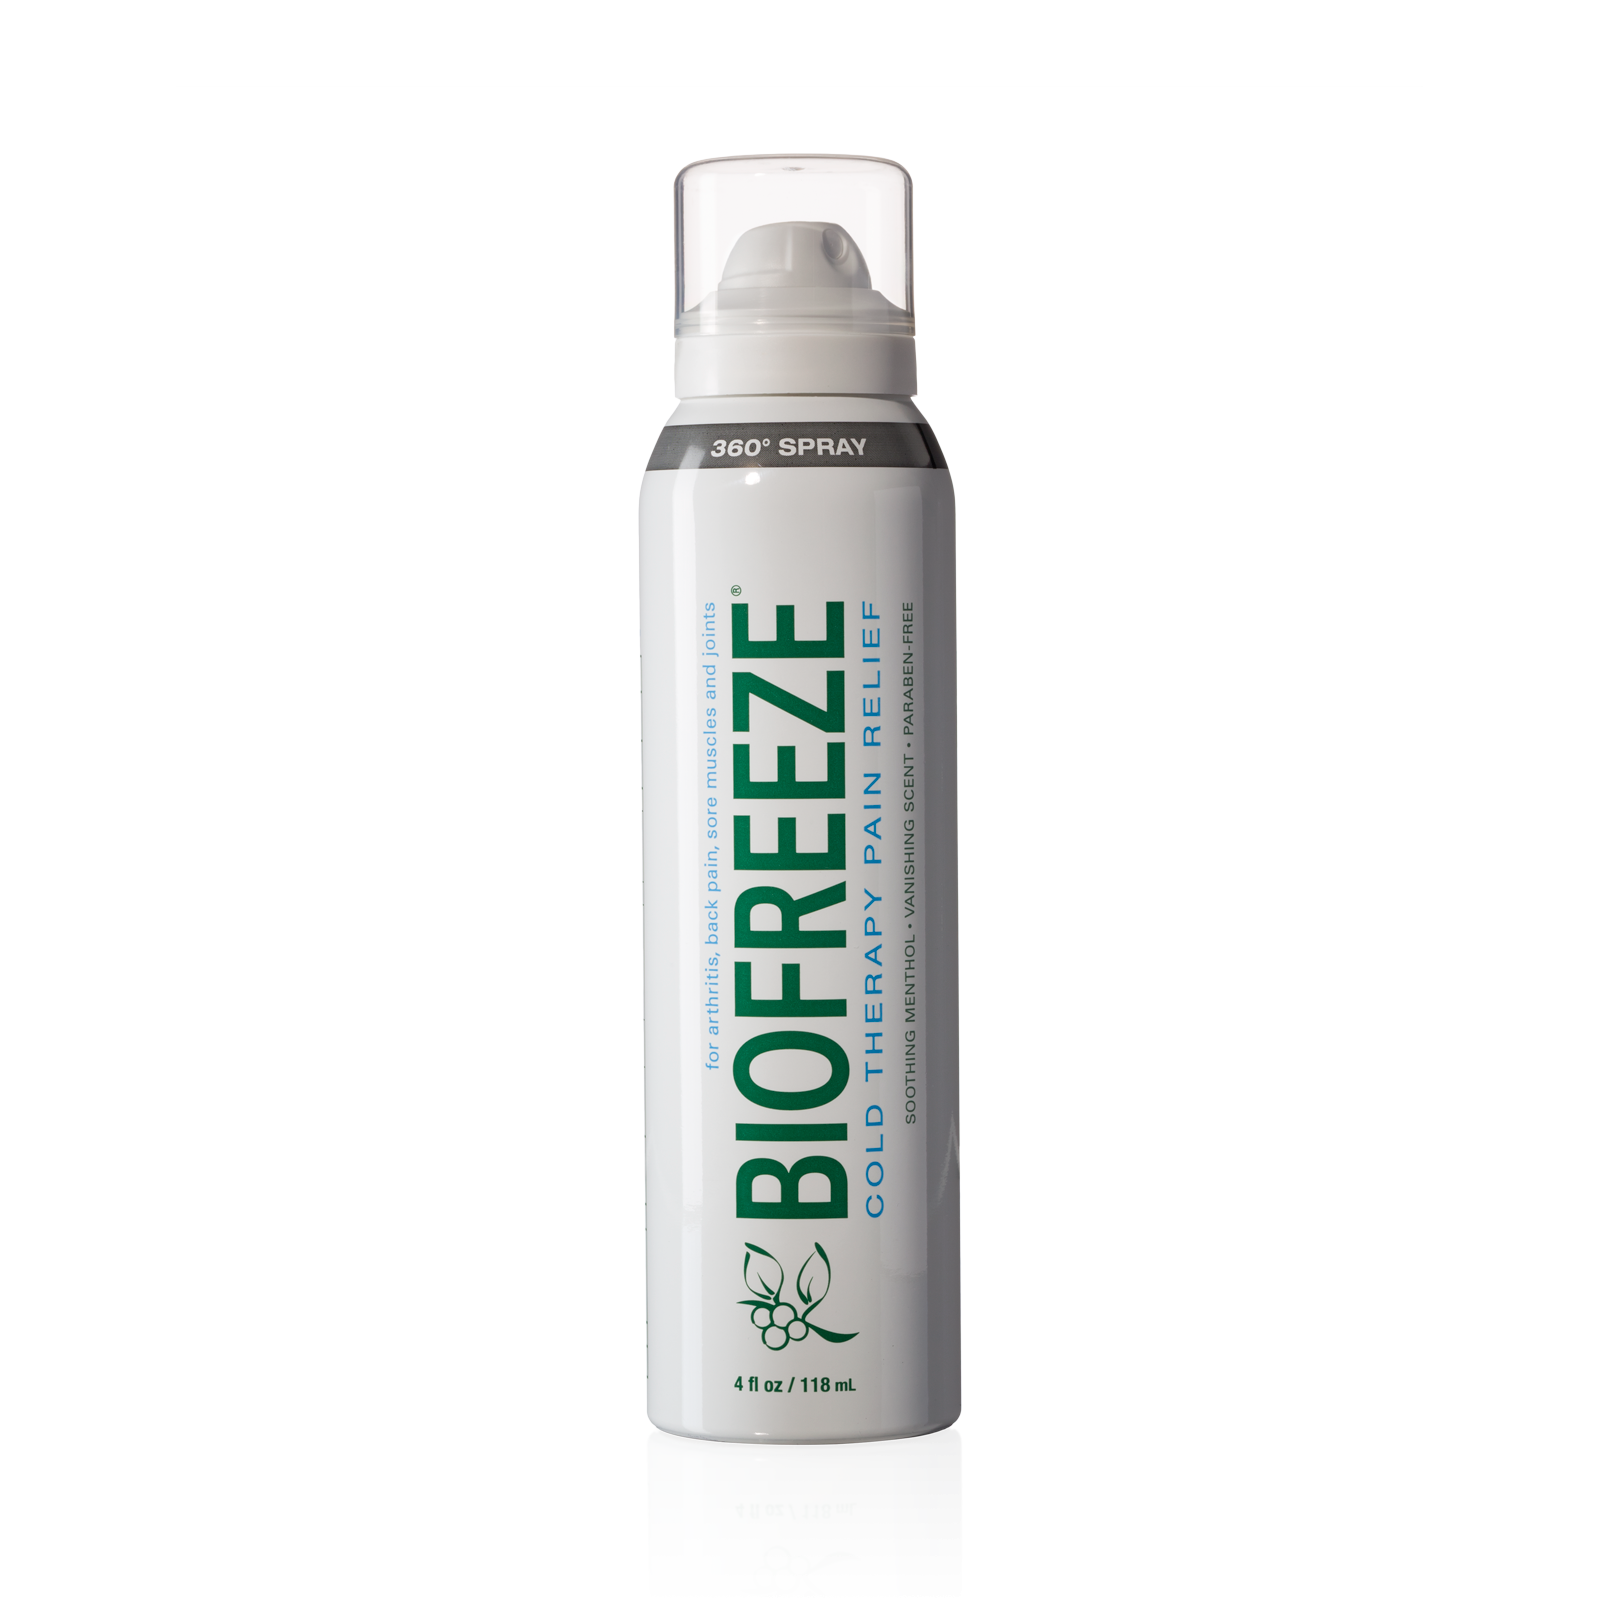 Biofreeze Pain Reliever 360 Continuous Spray, 4 Ounce Tube, Colorless Formula